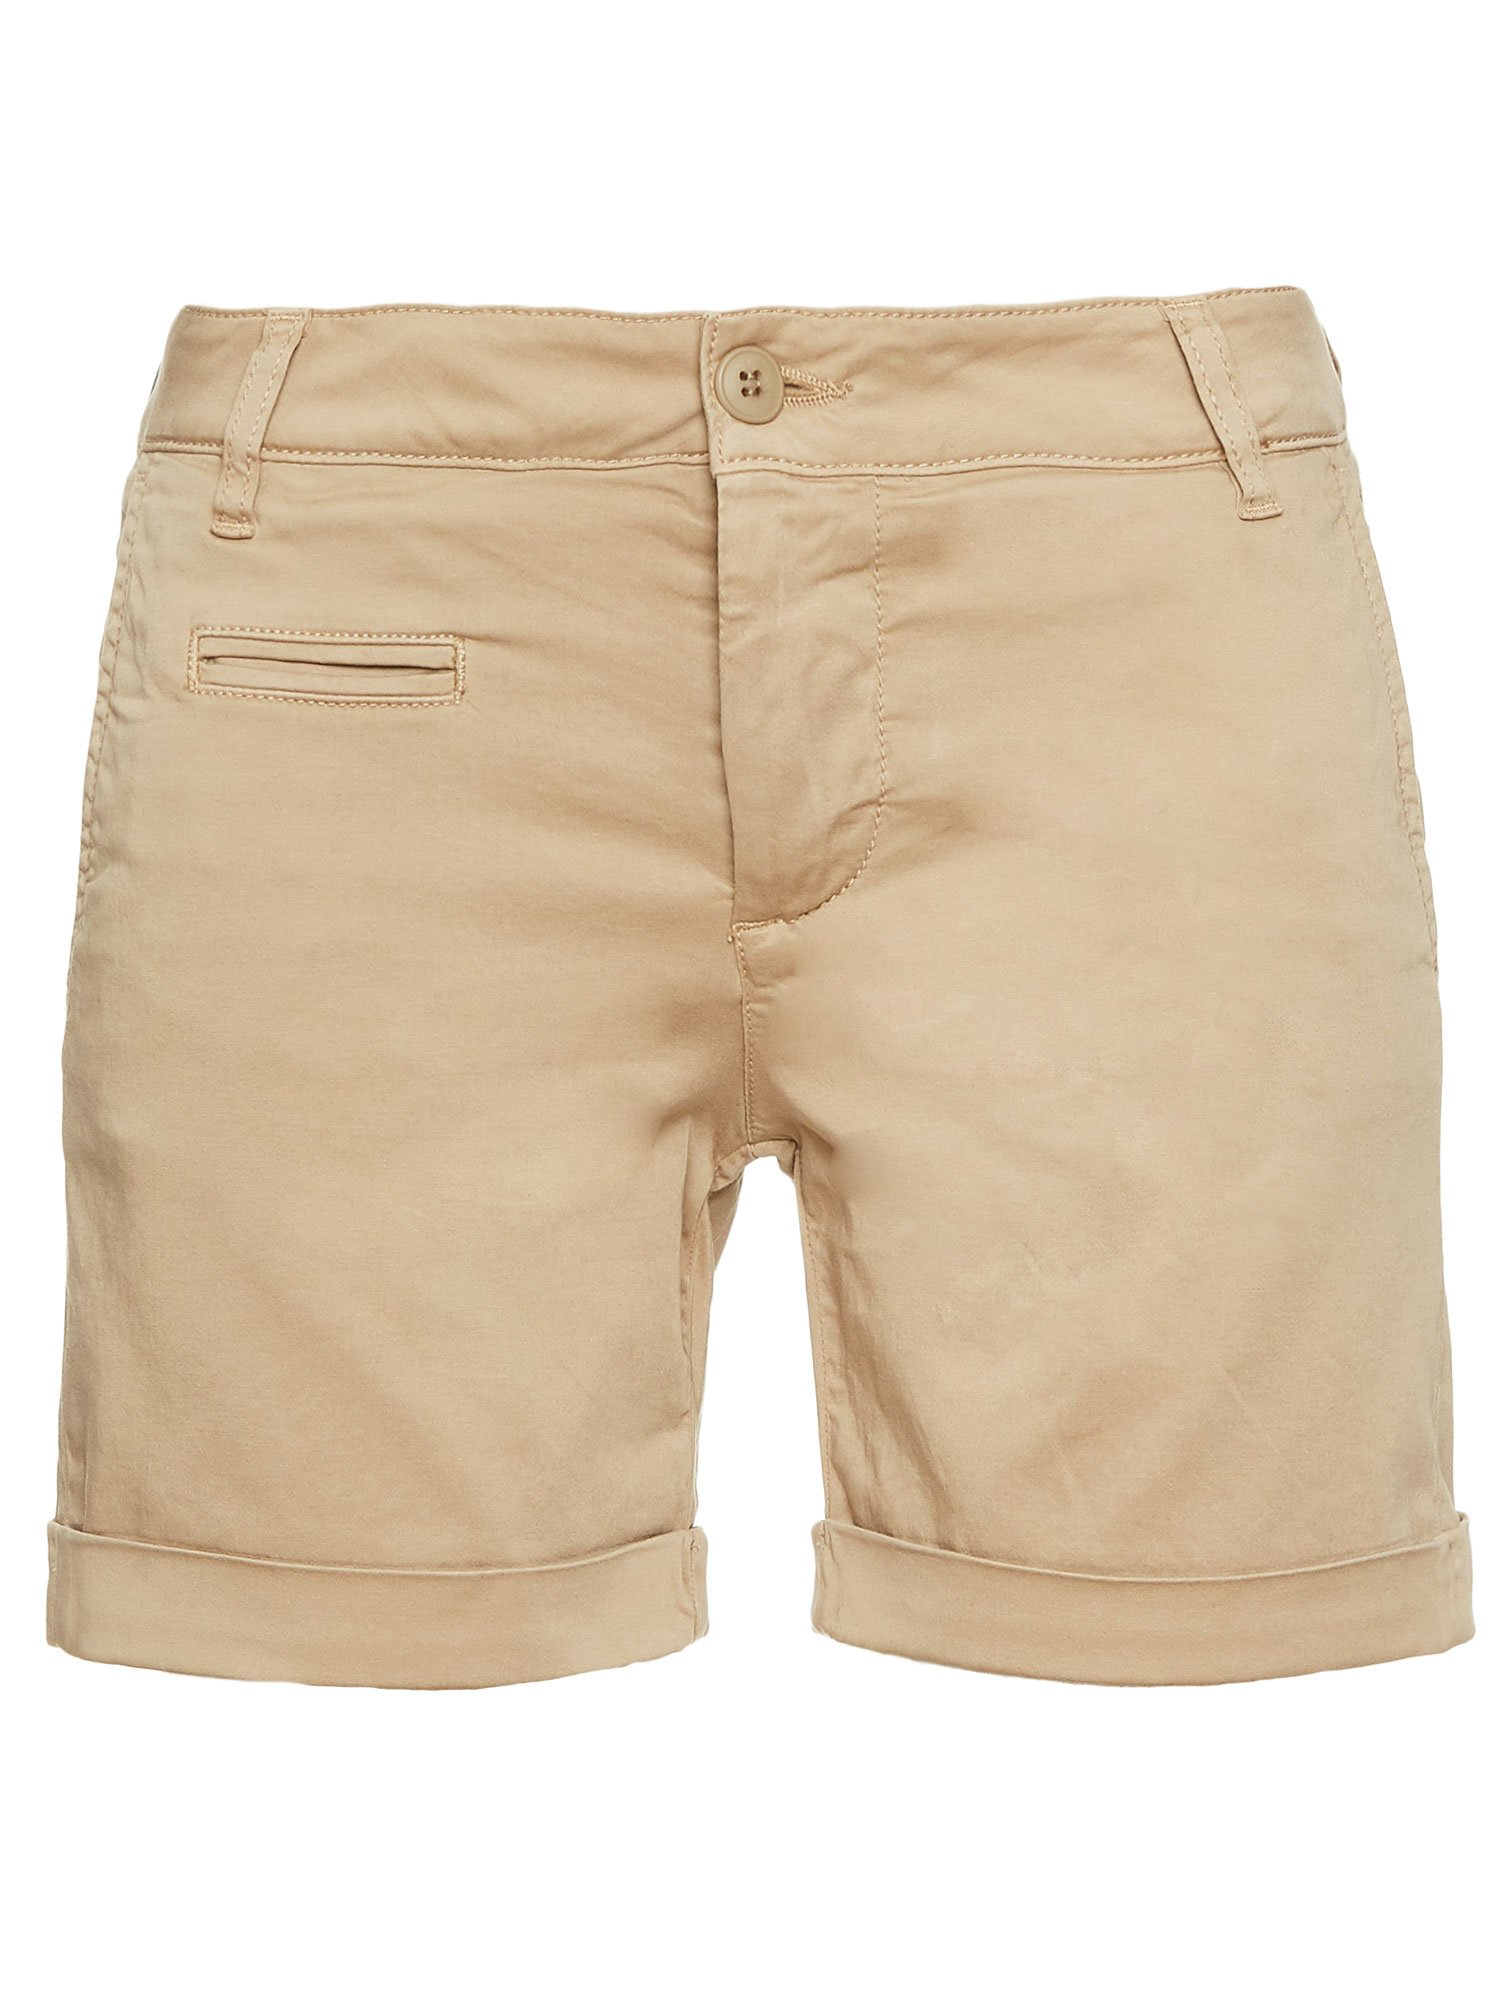 COTTON SATIN BERMUDA SHORTS - Blauer